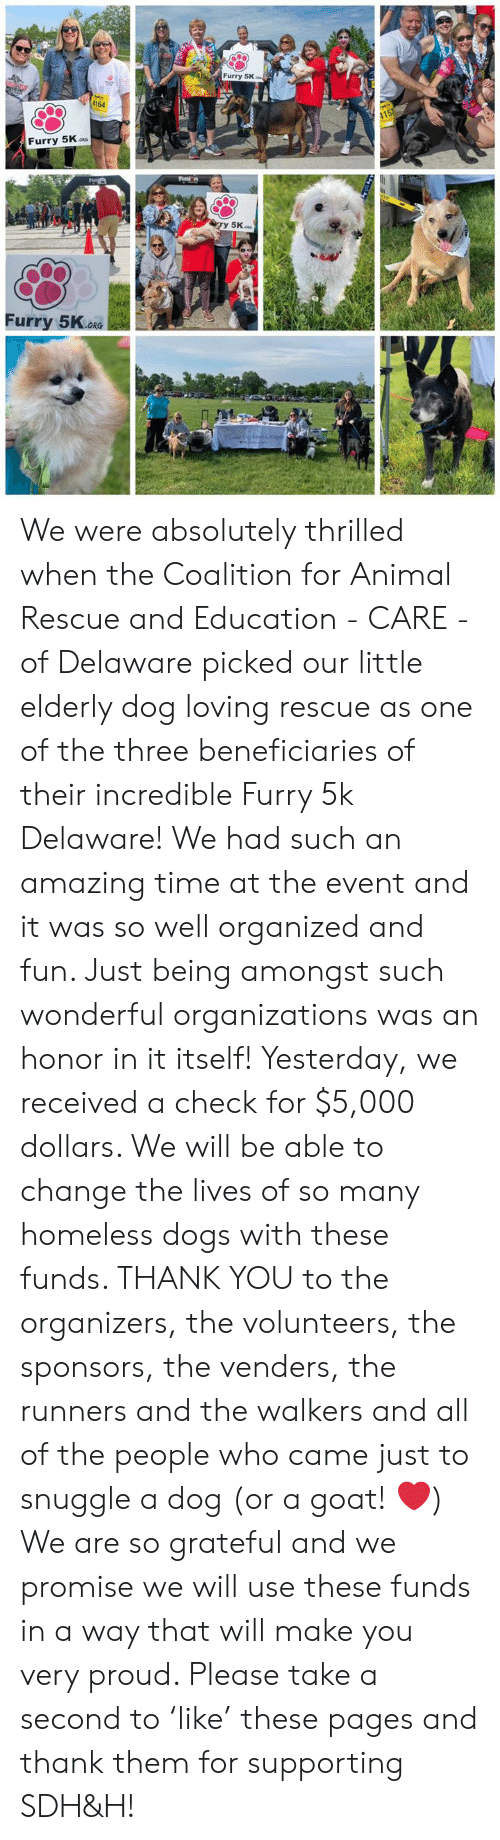 Dogs, Homeless, and Memes: Furry 5K  $164  Furry 5K.o  Furry 5K.ok  ORG We were absolutely thrilled when the Coalition for Animal Rescue and Education - CARE - of Delaware picked our little elderly dog loving rescue as one of the three beneficiaries of their incredible Furry 5k Delaware! We had such an amazing time at the event and it was so well organized and fun. Just being amongst such wonderful organizations was an honor in it itself! Yesterday, we received a check for $5,000 dollars. We will be able to change the lives of so many homeless dogs with these funds. THANK YOU to the organizers, the volunteers, the sponsors, the venders, the runners and the walkers and all of the people who came just to snuggle a dog (or a goat! ❤️) We are so grateful and we promise we will use these funds in a way that will make you very proud. Please take a second to 'like' these pages and thank them for supporting SDH&H!